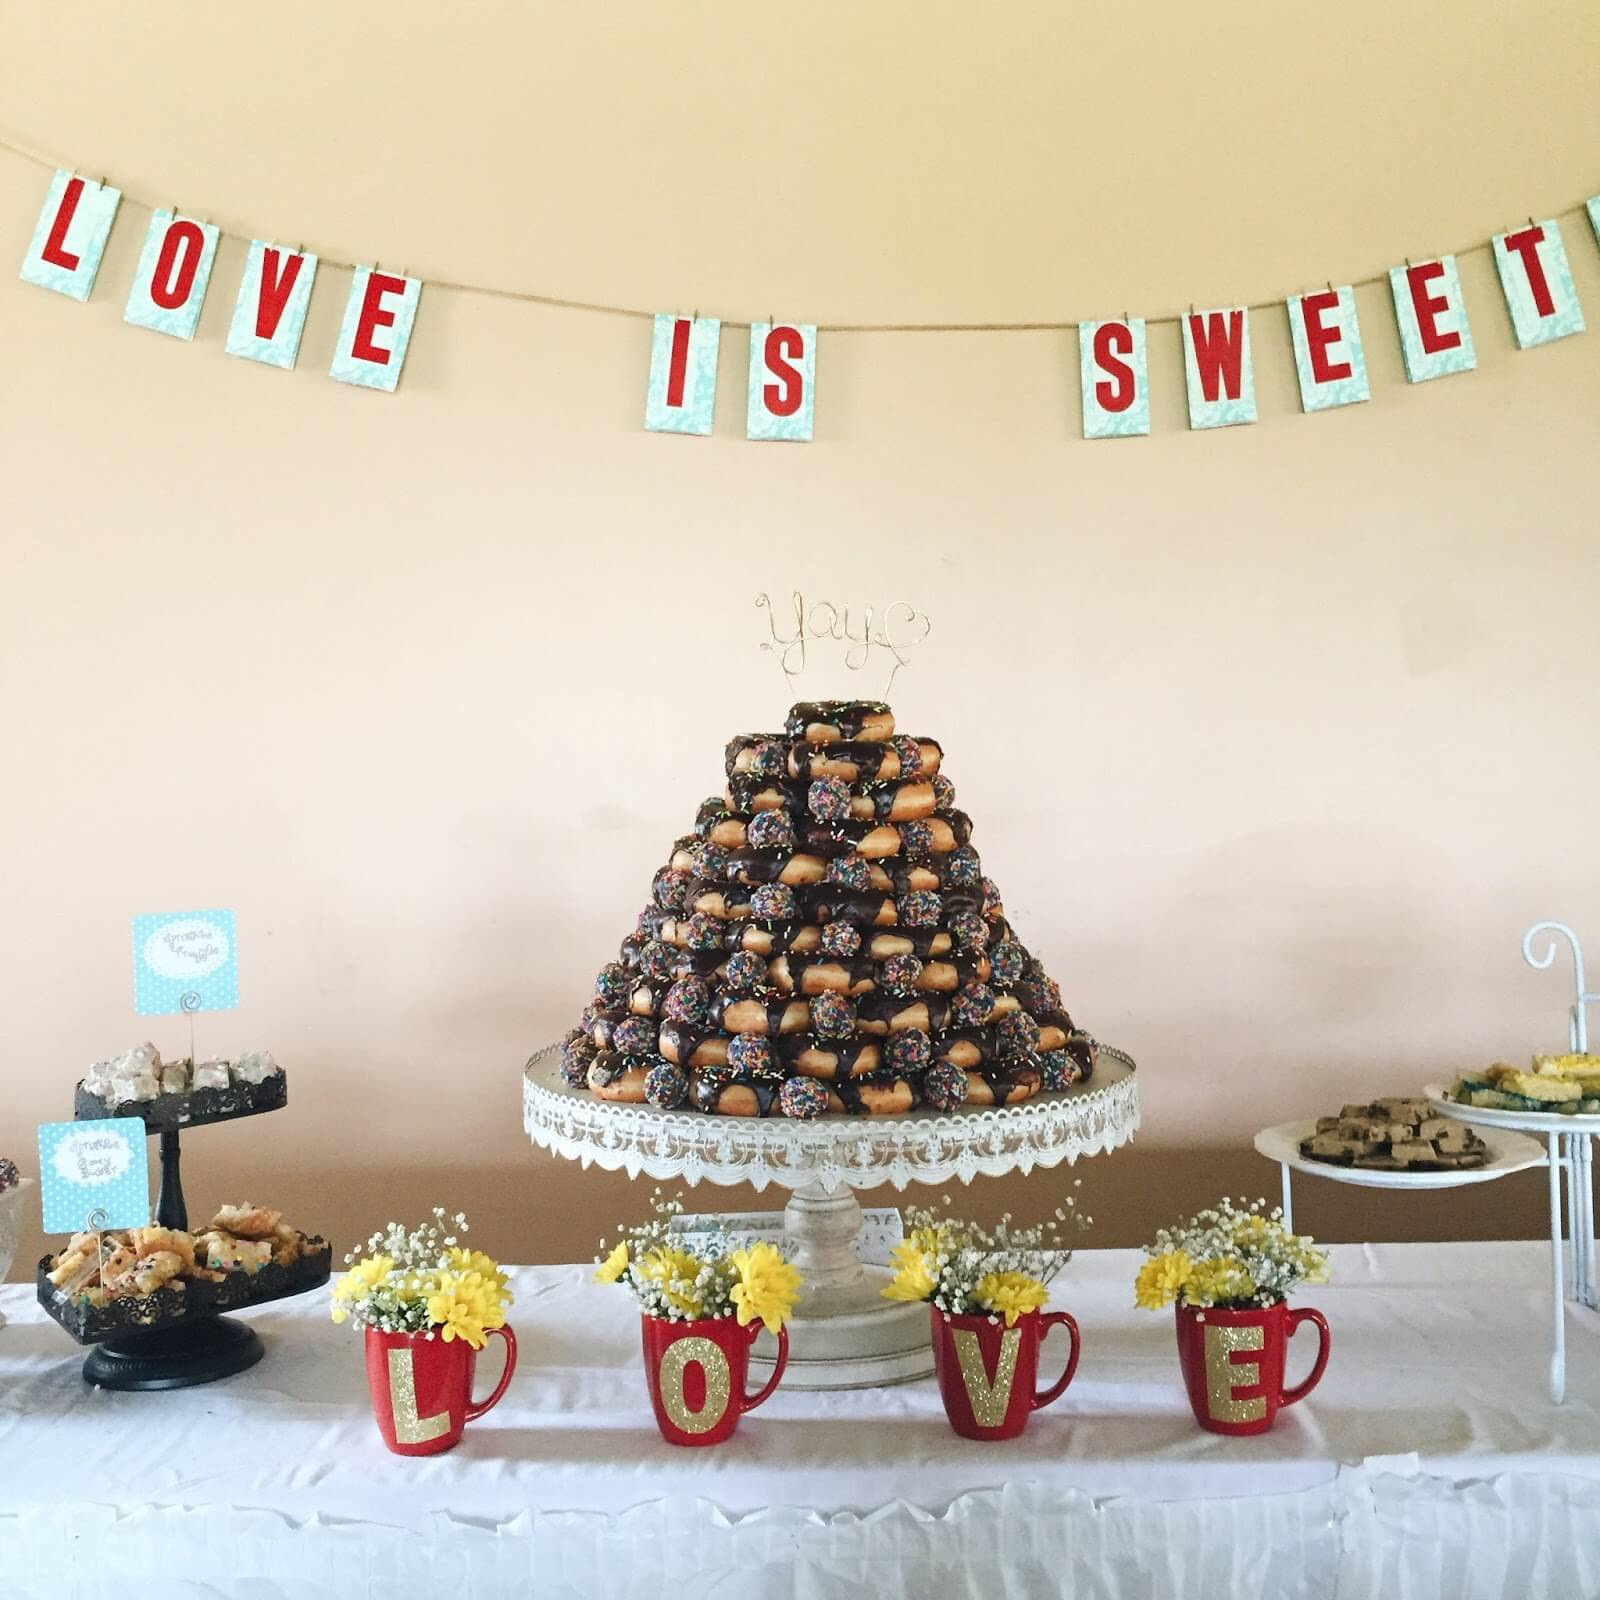 wedding cake made of donuts